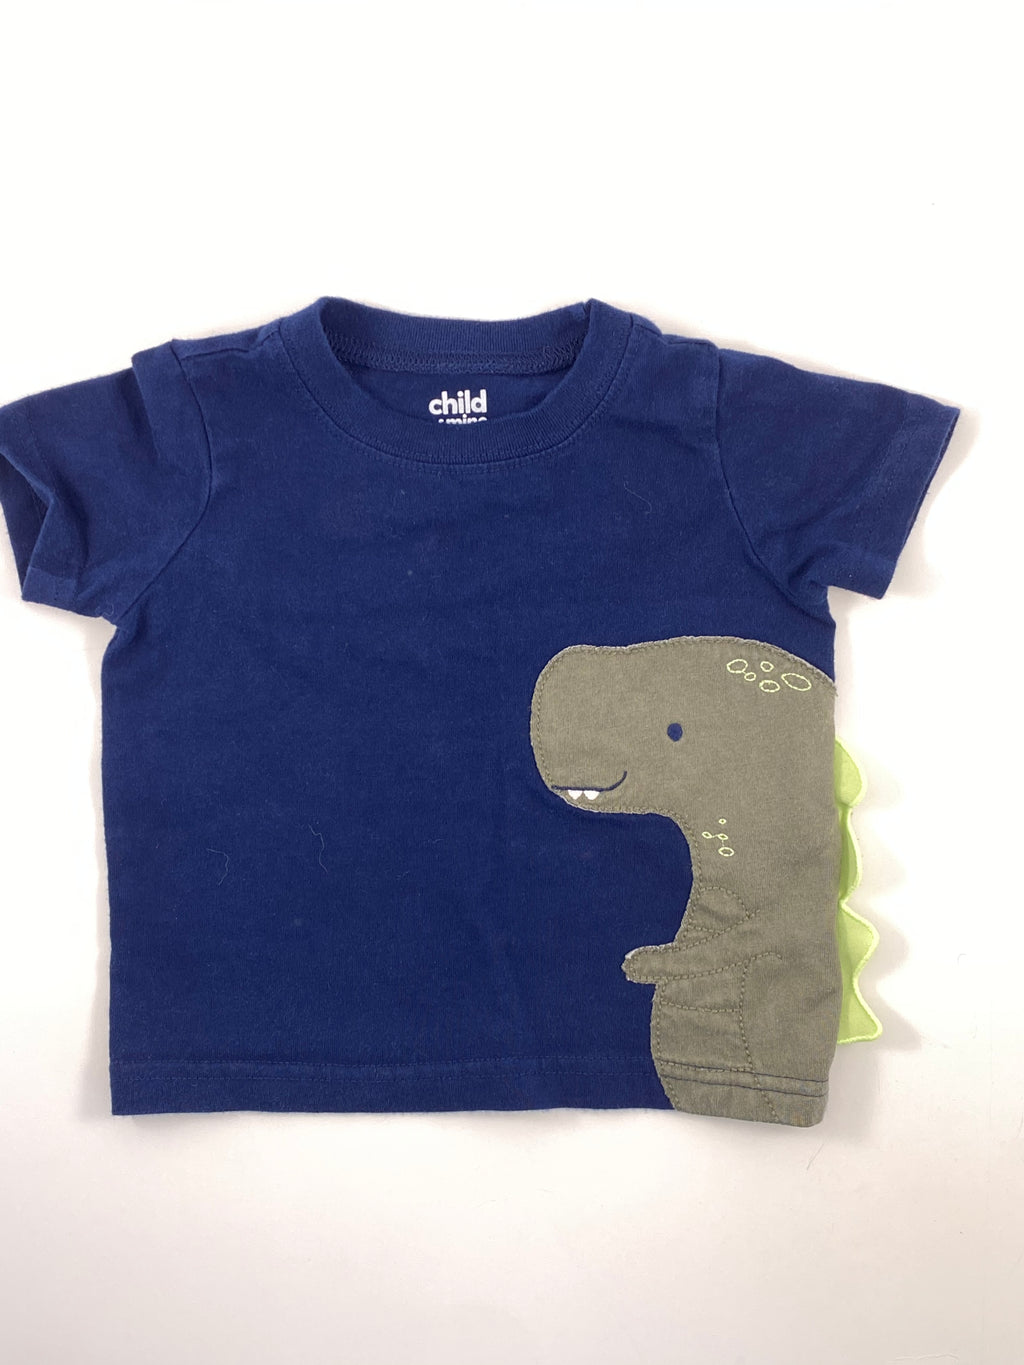 Boy's Short Sleeve Shirt - Size 12-18mo